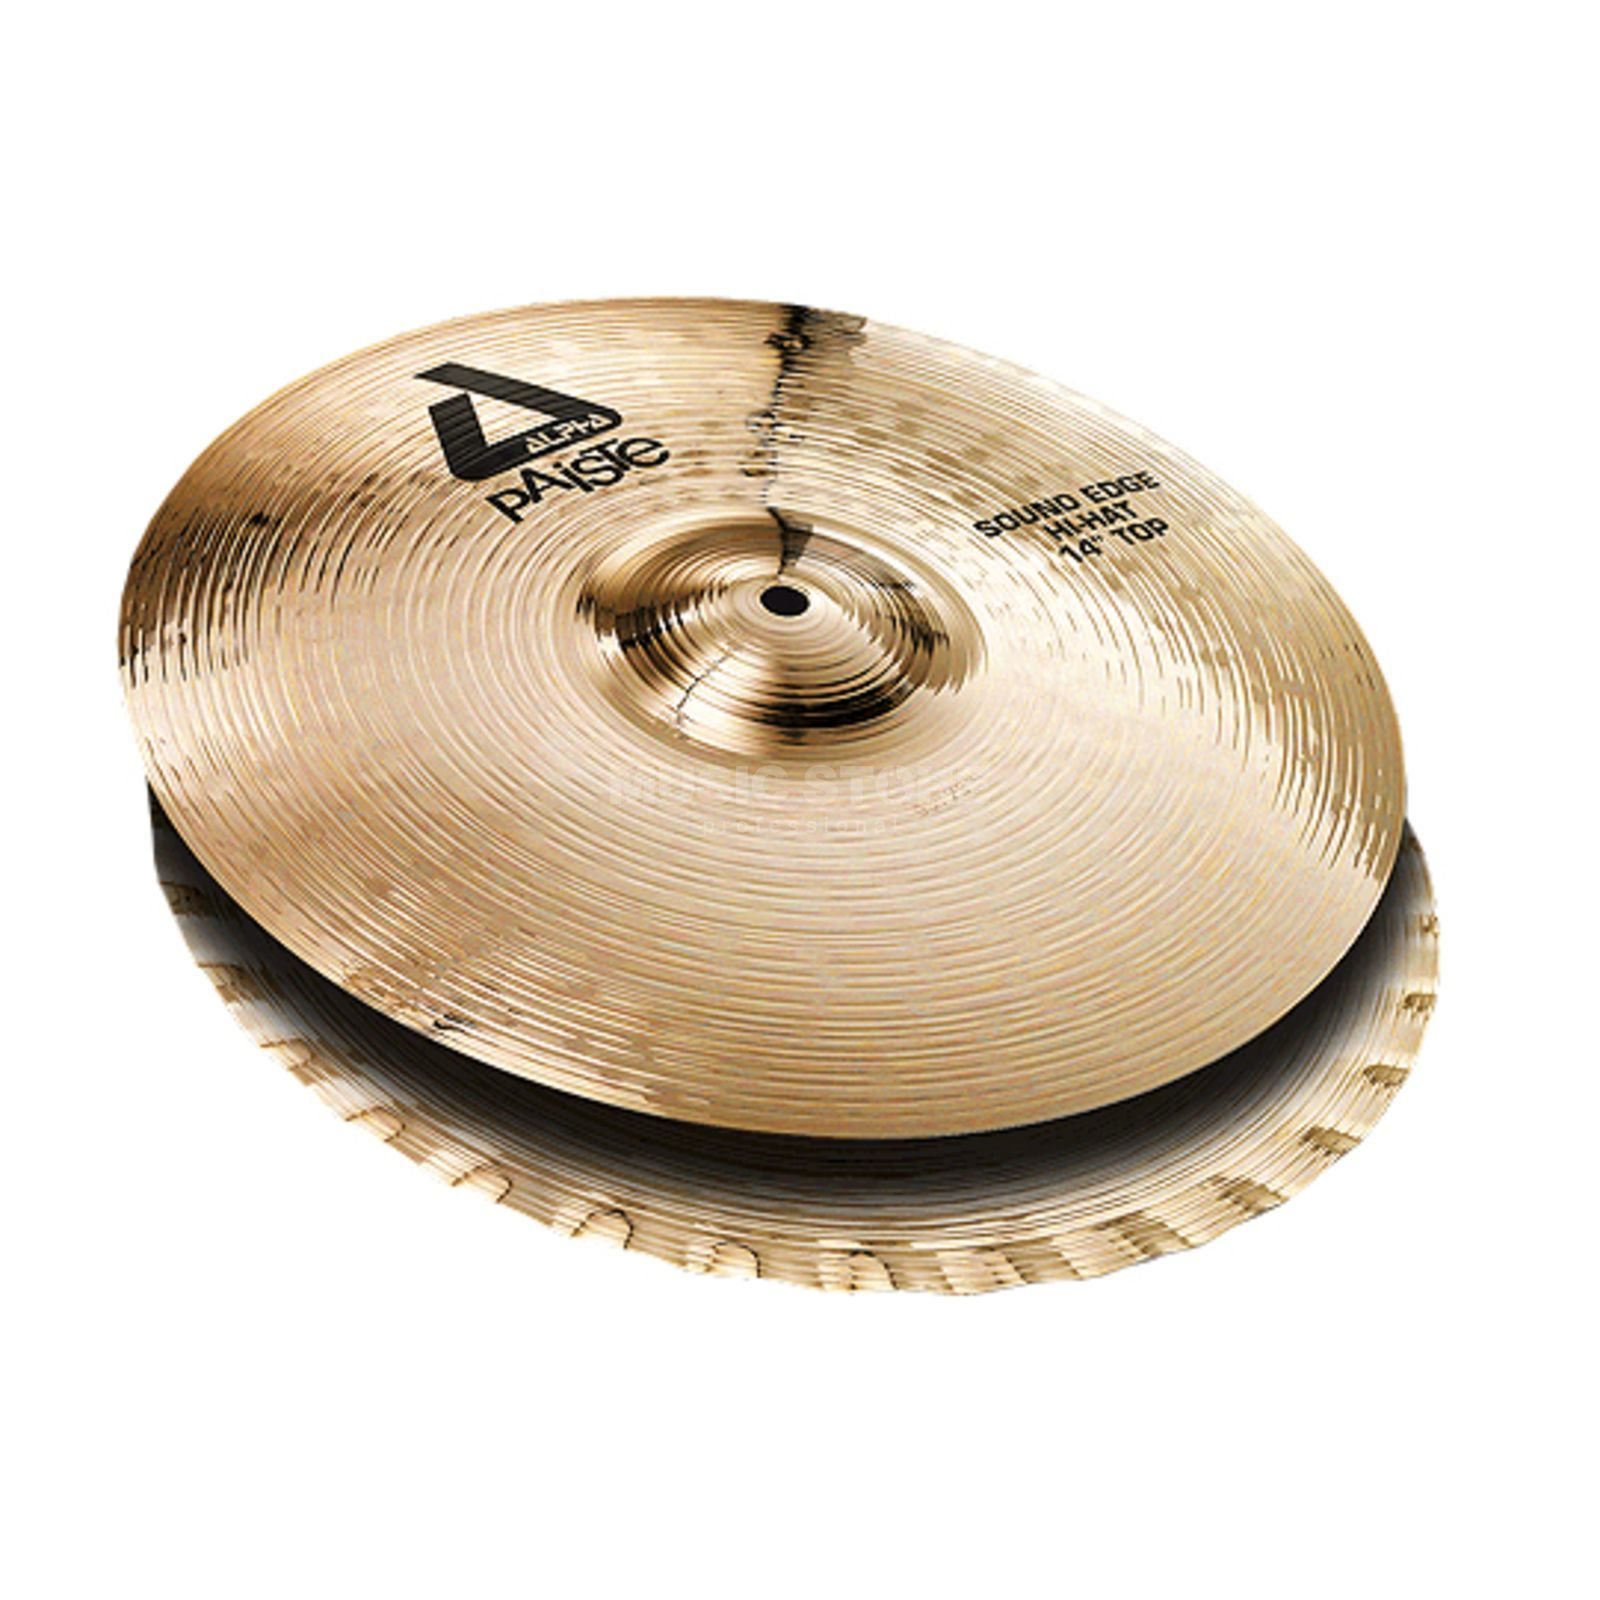 "Paiste Alpha Sound Edge HiHat 14"", Brilliant Productafbeelding"